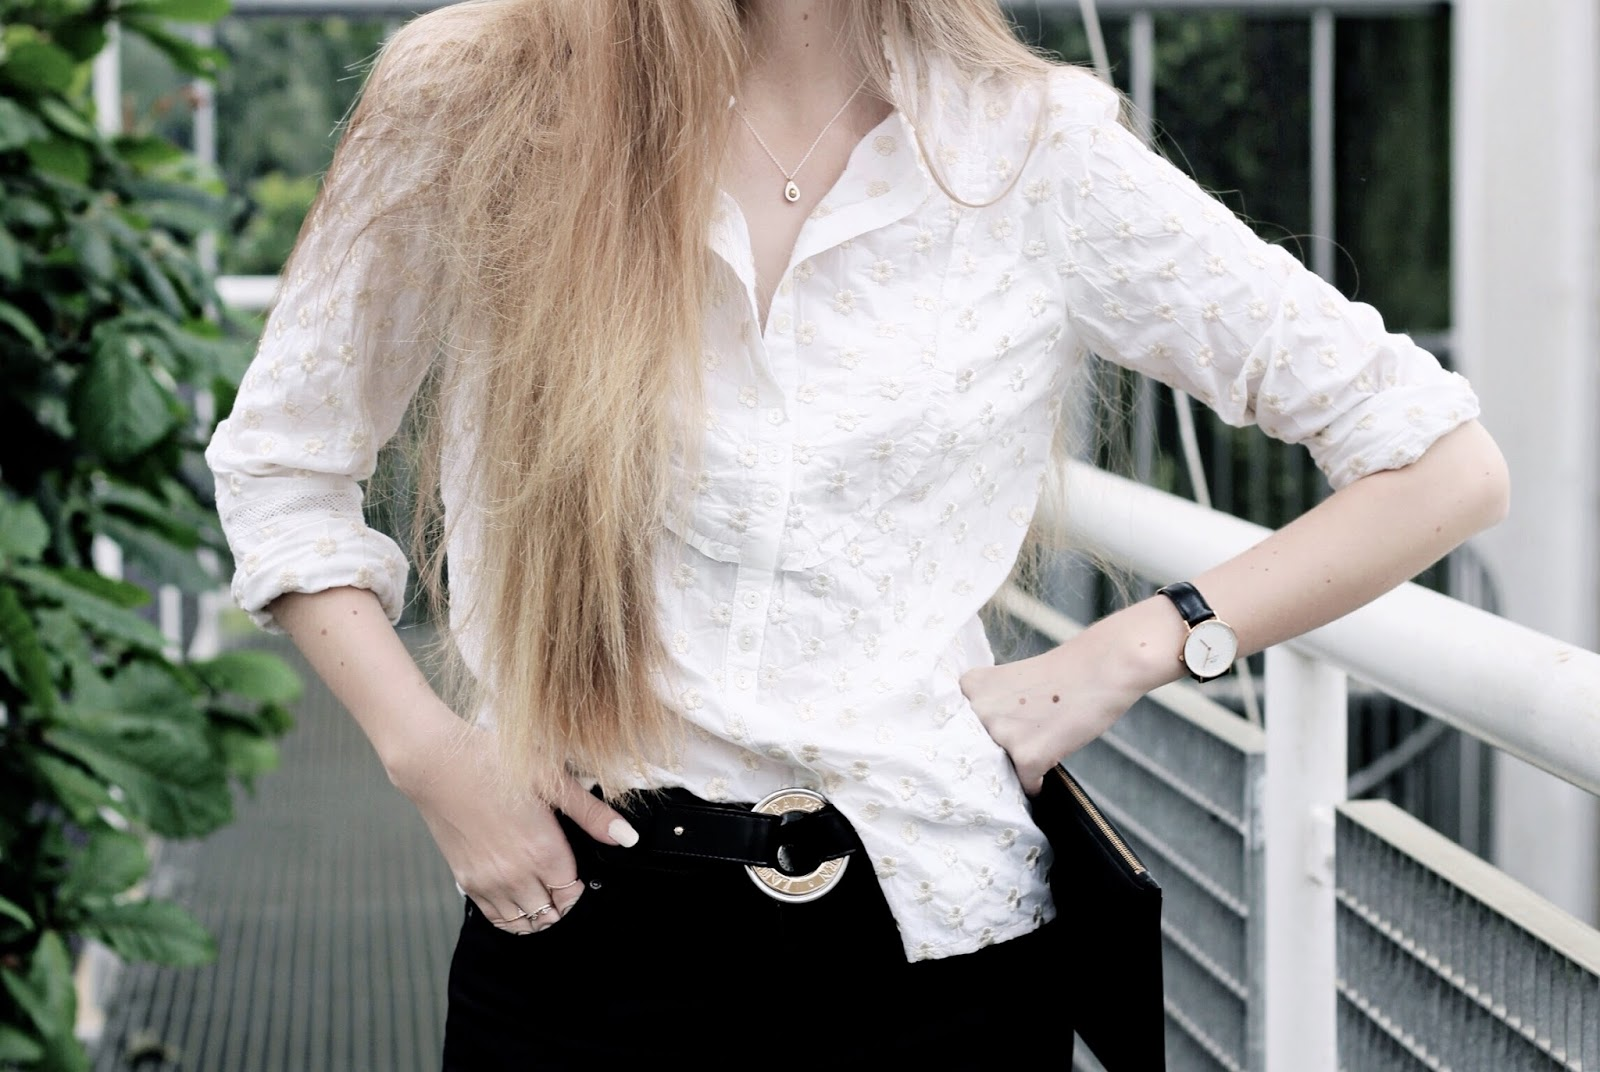 Classic White Shirt With a Twist